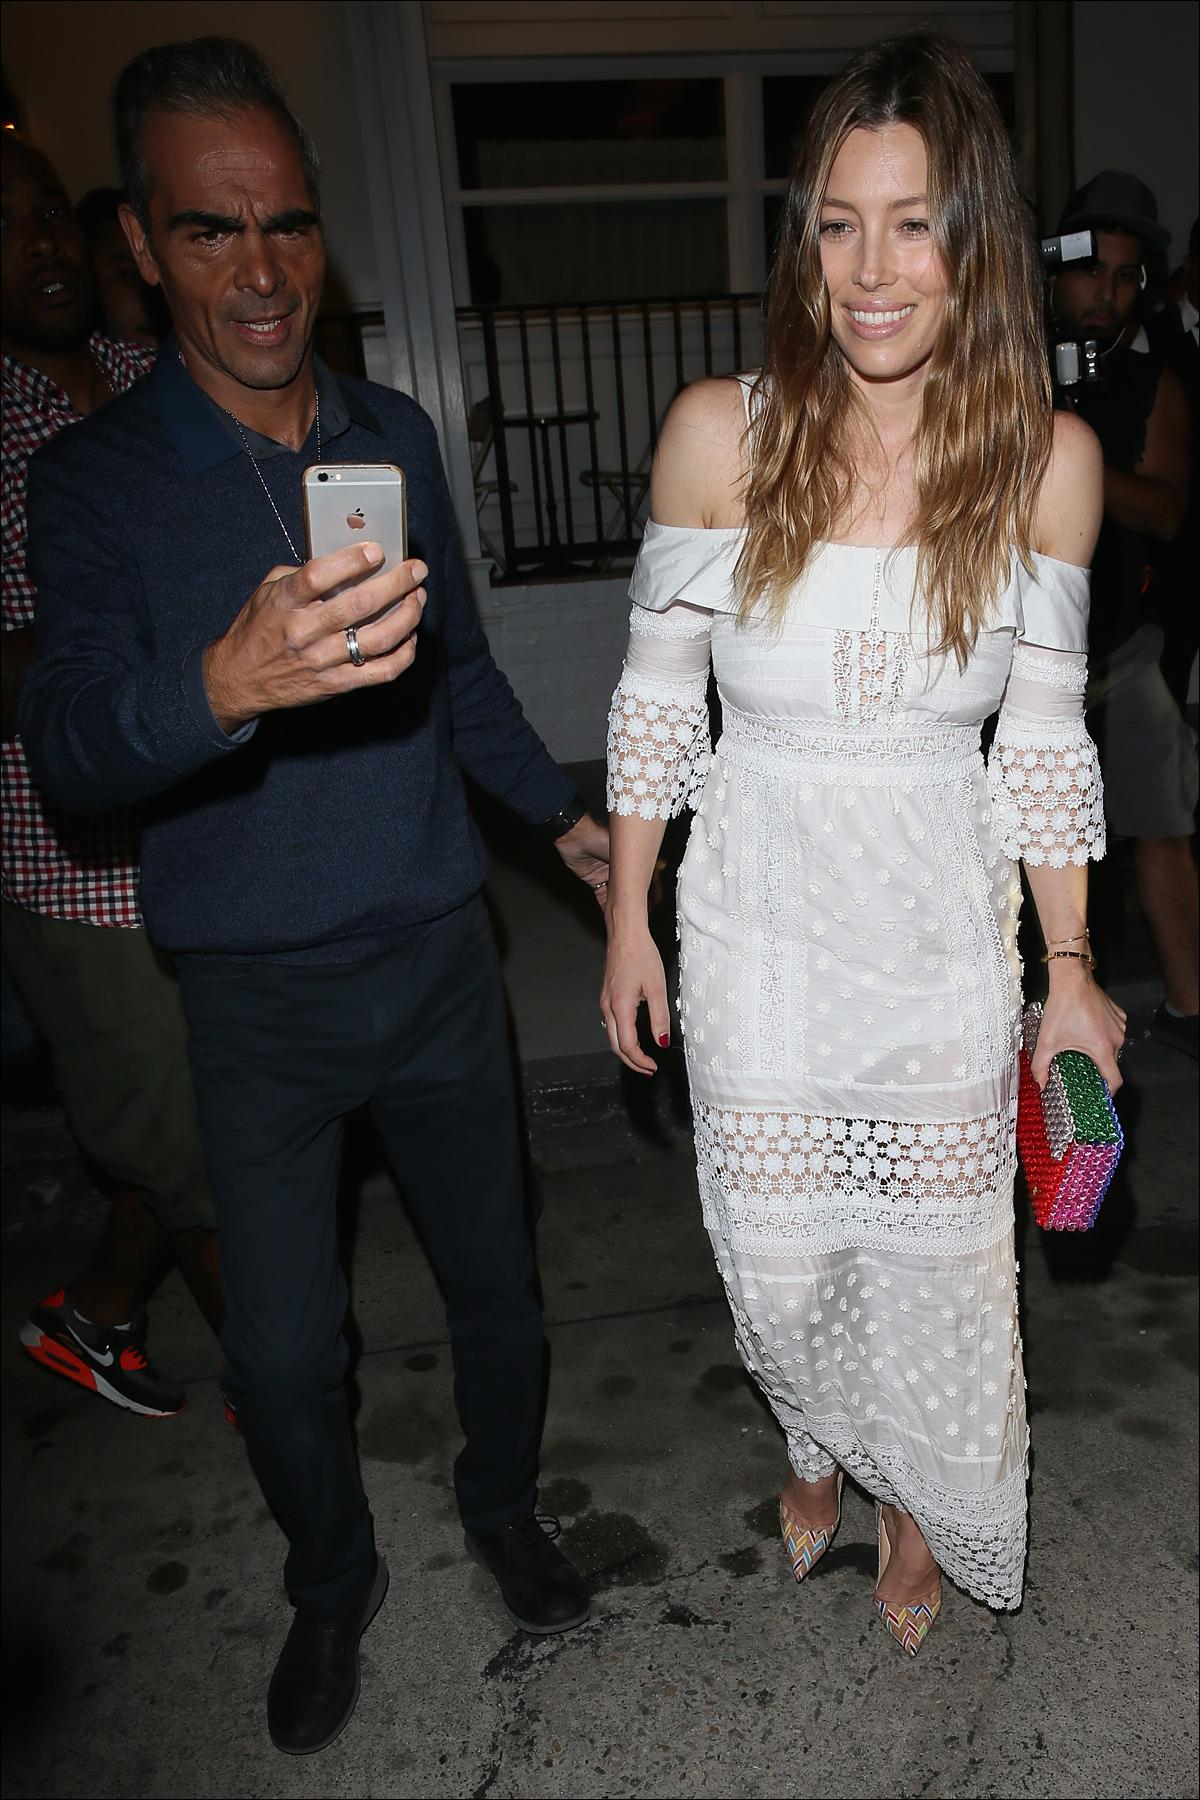 Jessica Biel seen leaving the opening night of her new restaurant Au Fudge  Featuring: Jessica Biel Where: Los Angeles, California, United States When: 17 Feb 2016 Credit: Michael Wright/WENN.com